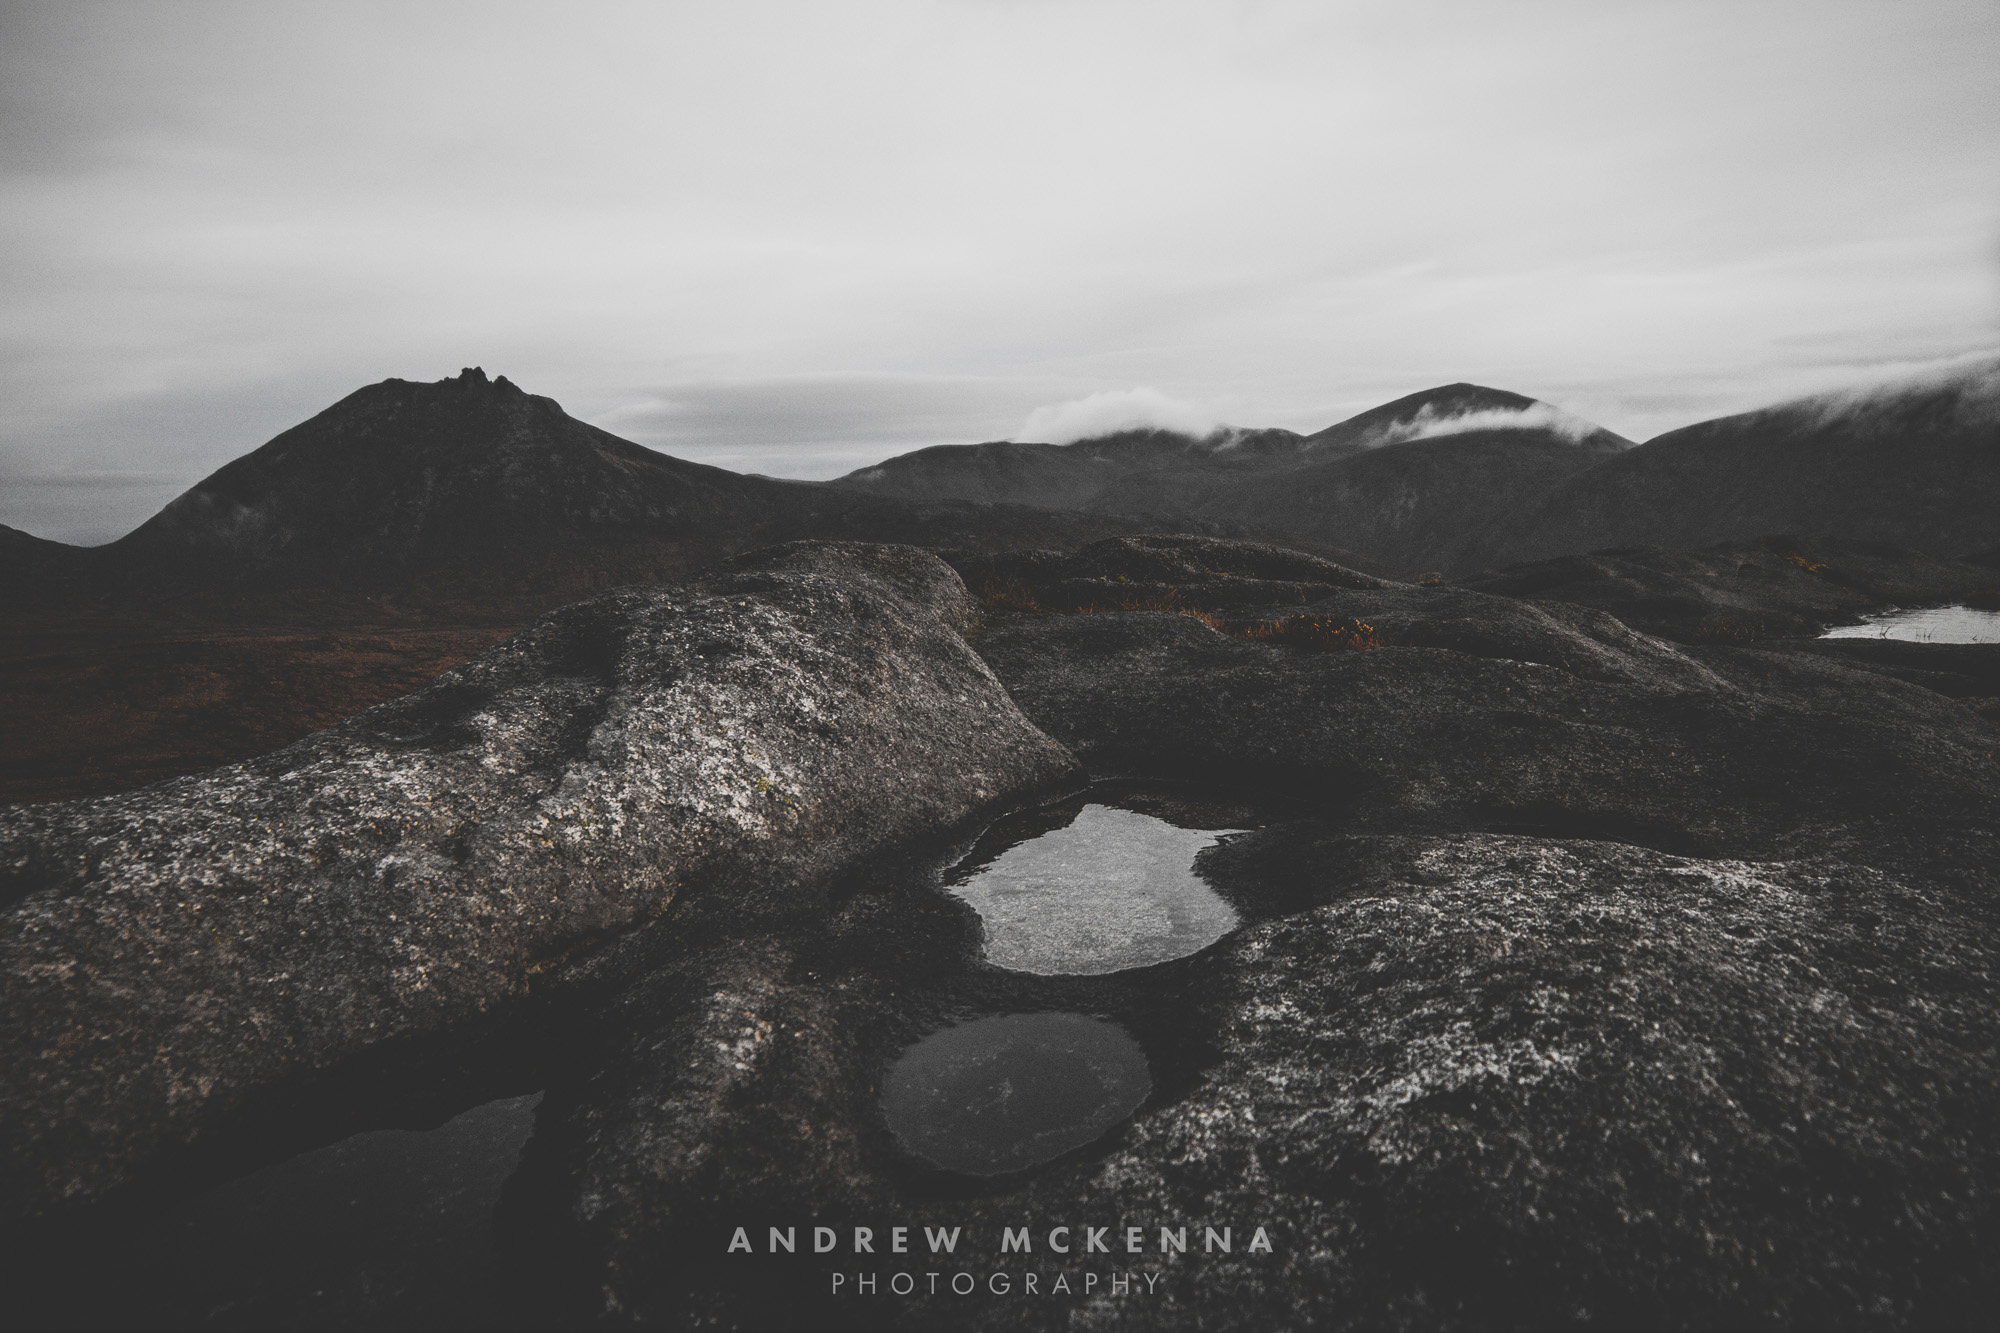 Slieve Doan Mourne Mountains Photography Andrew McKenna County Down